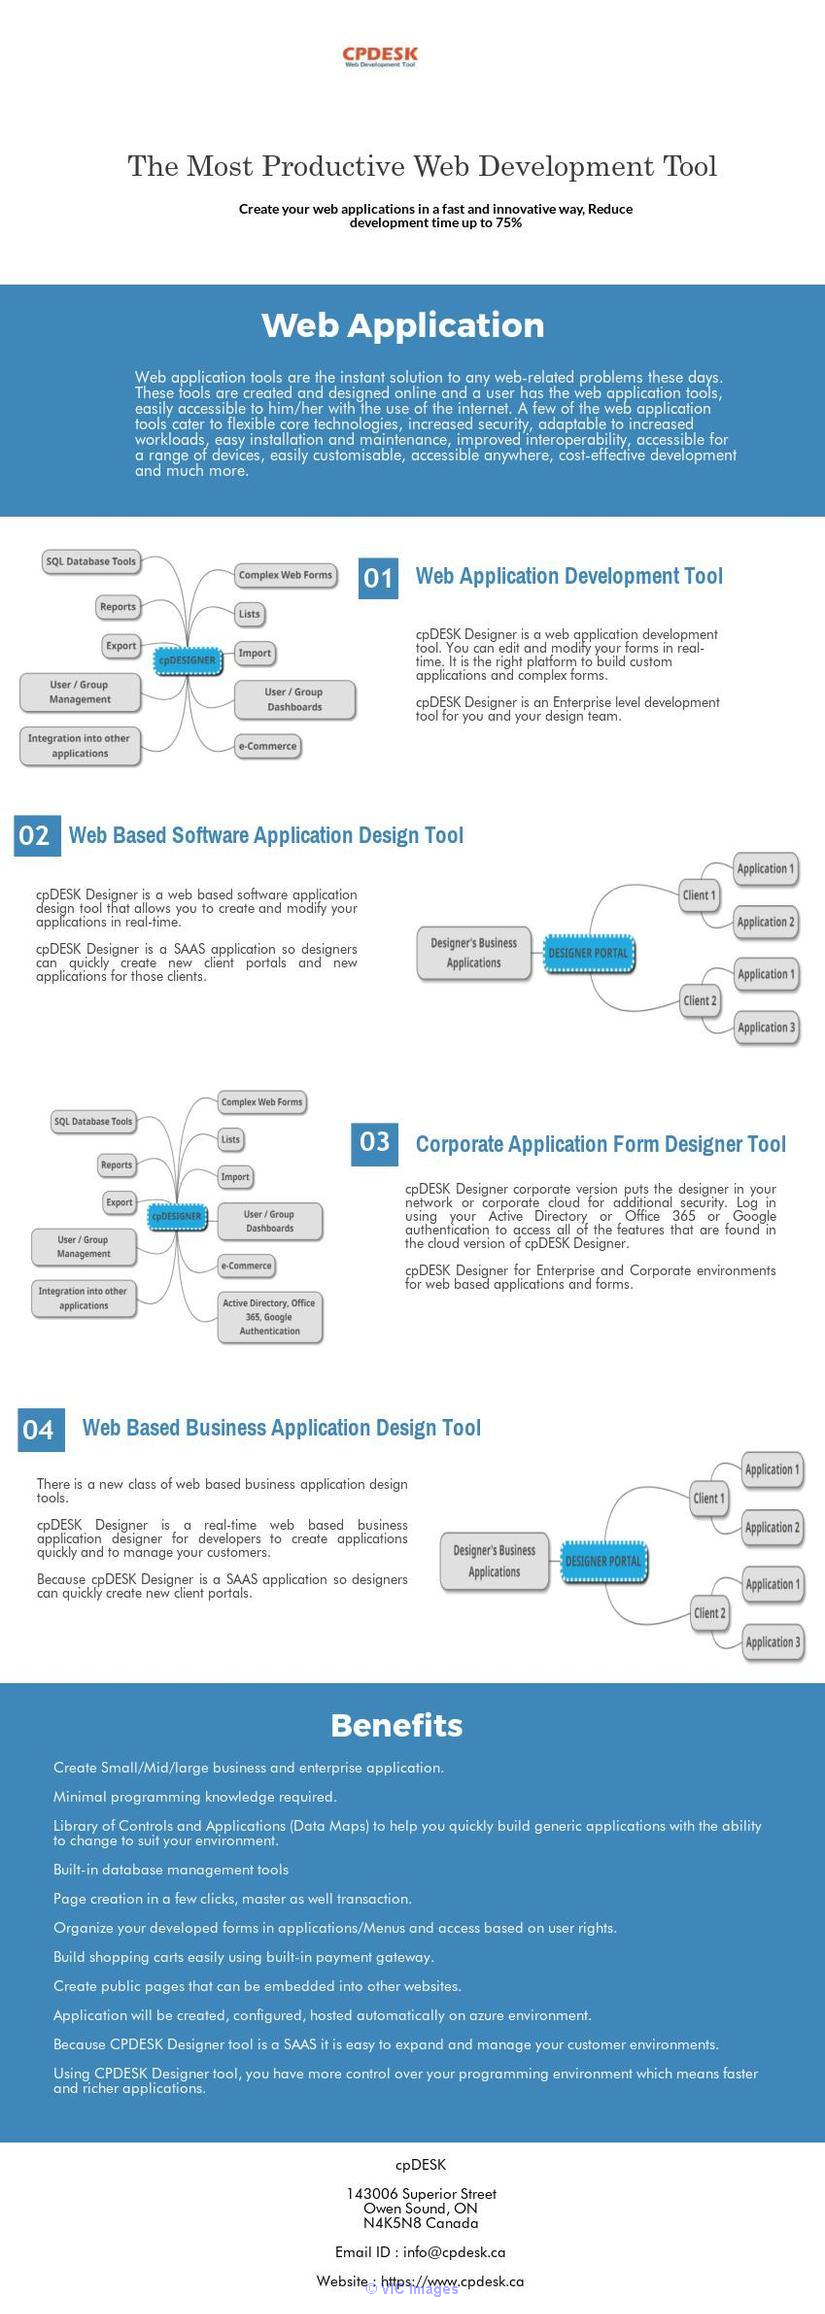 Web Application Development Tool | Web Development Tool Company calgary